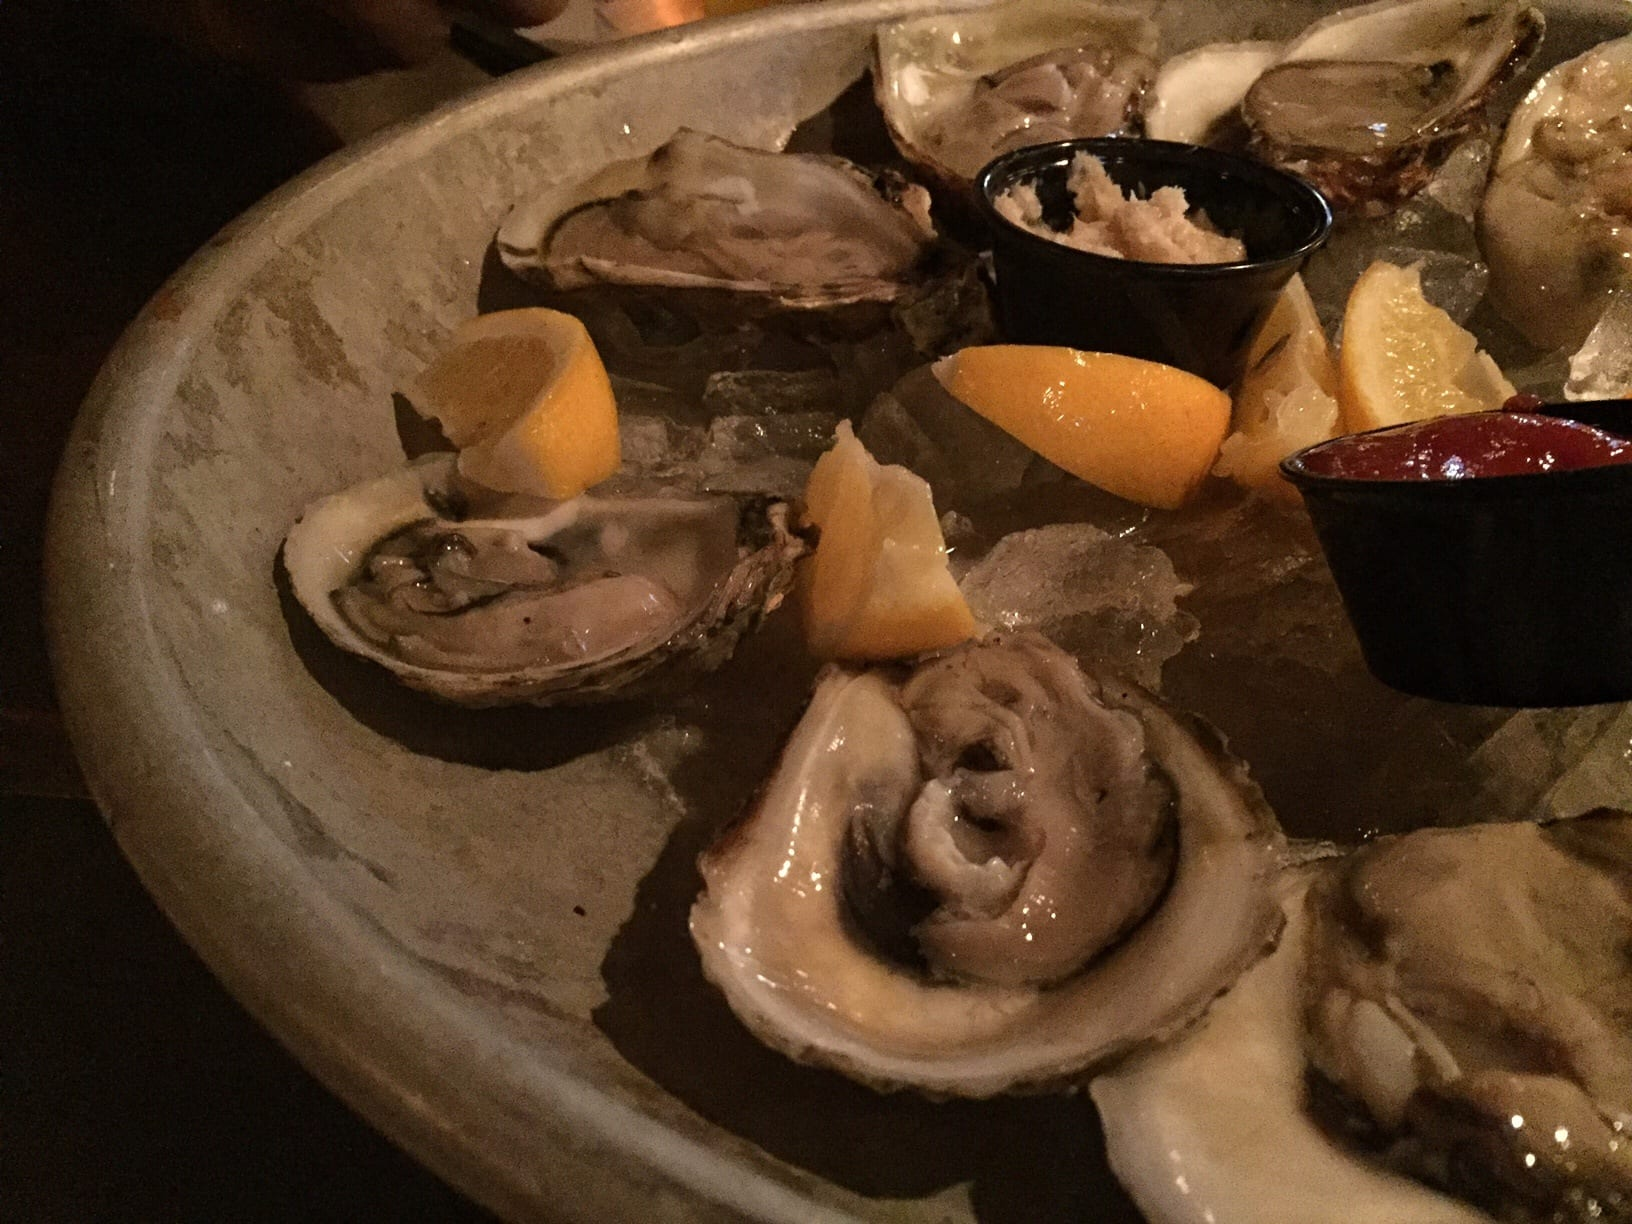 Oysters at the Grog